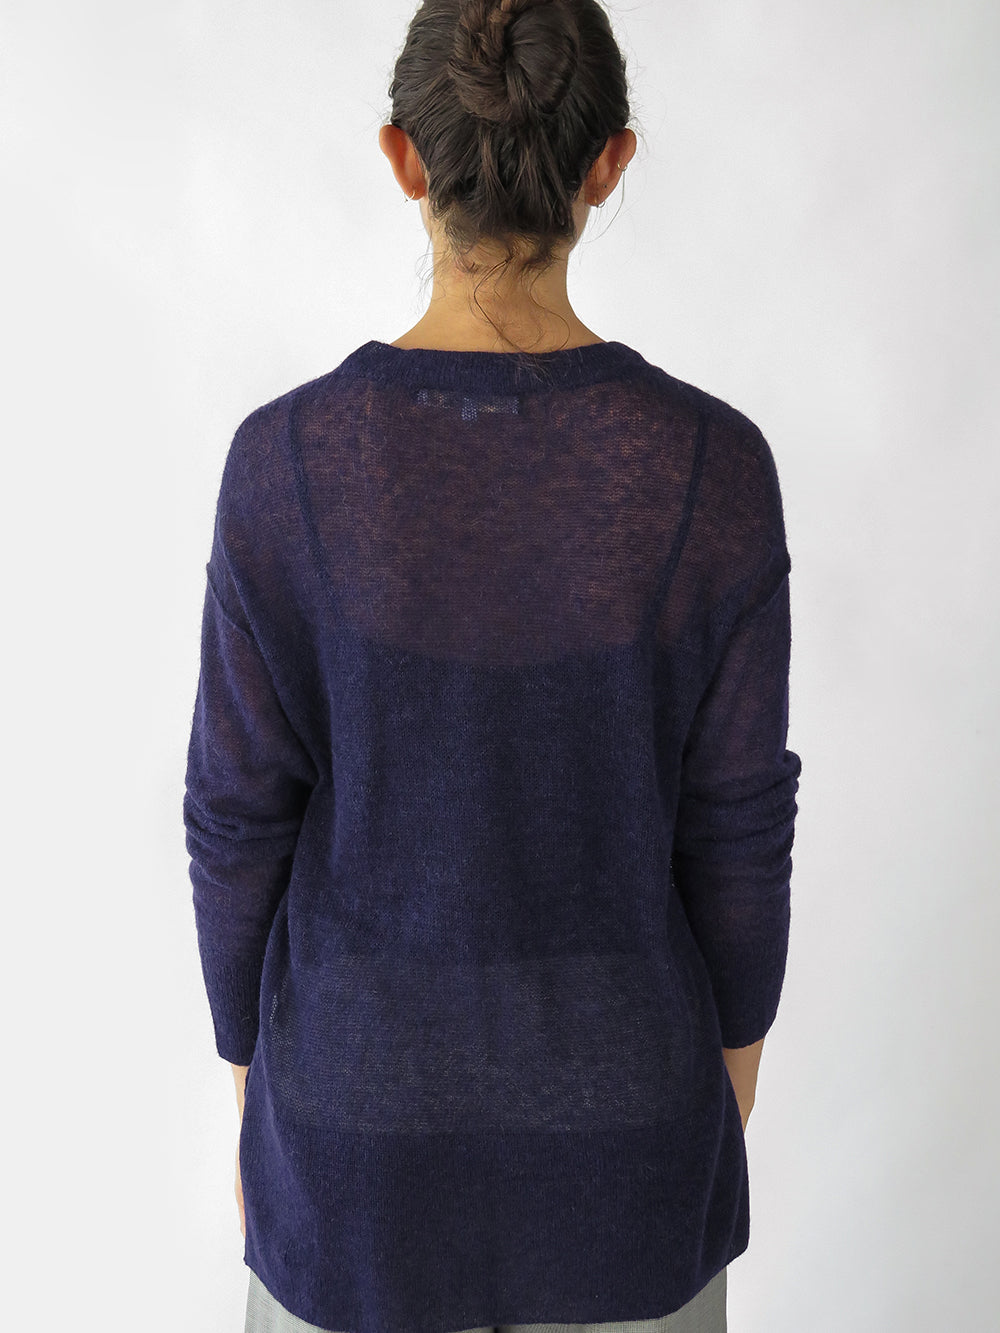 tissue v-neck pullover in navy